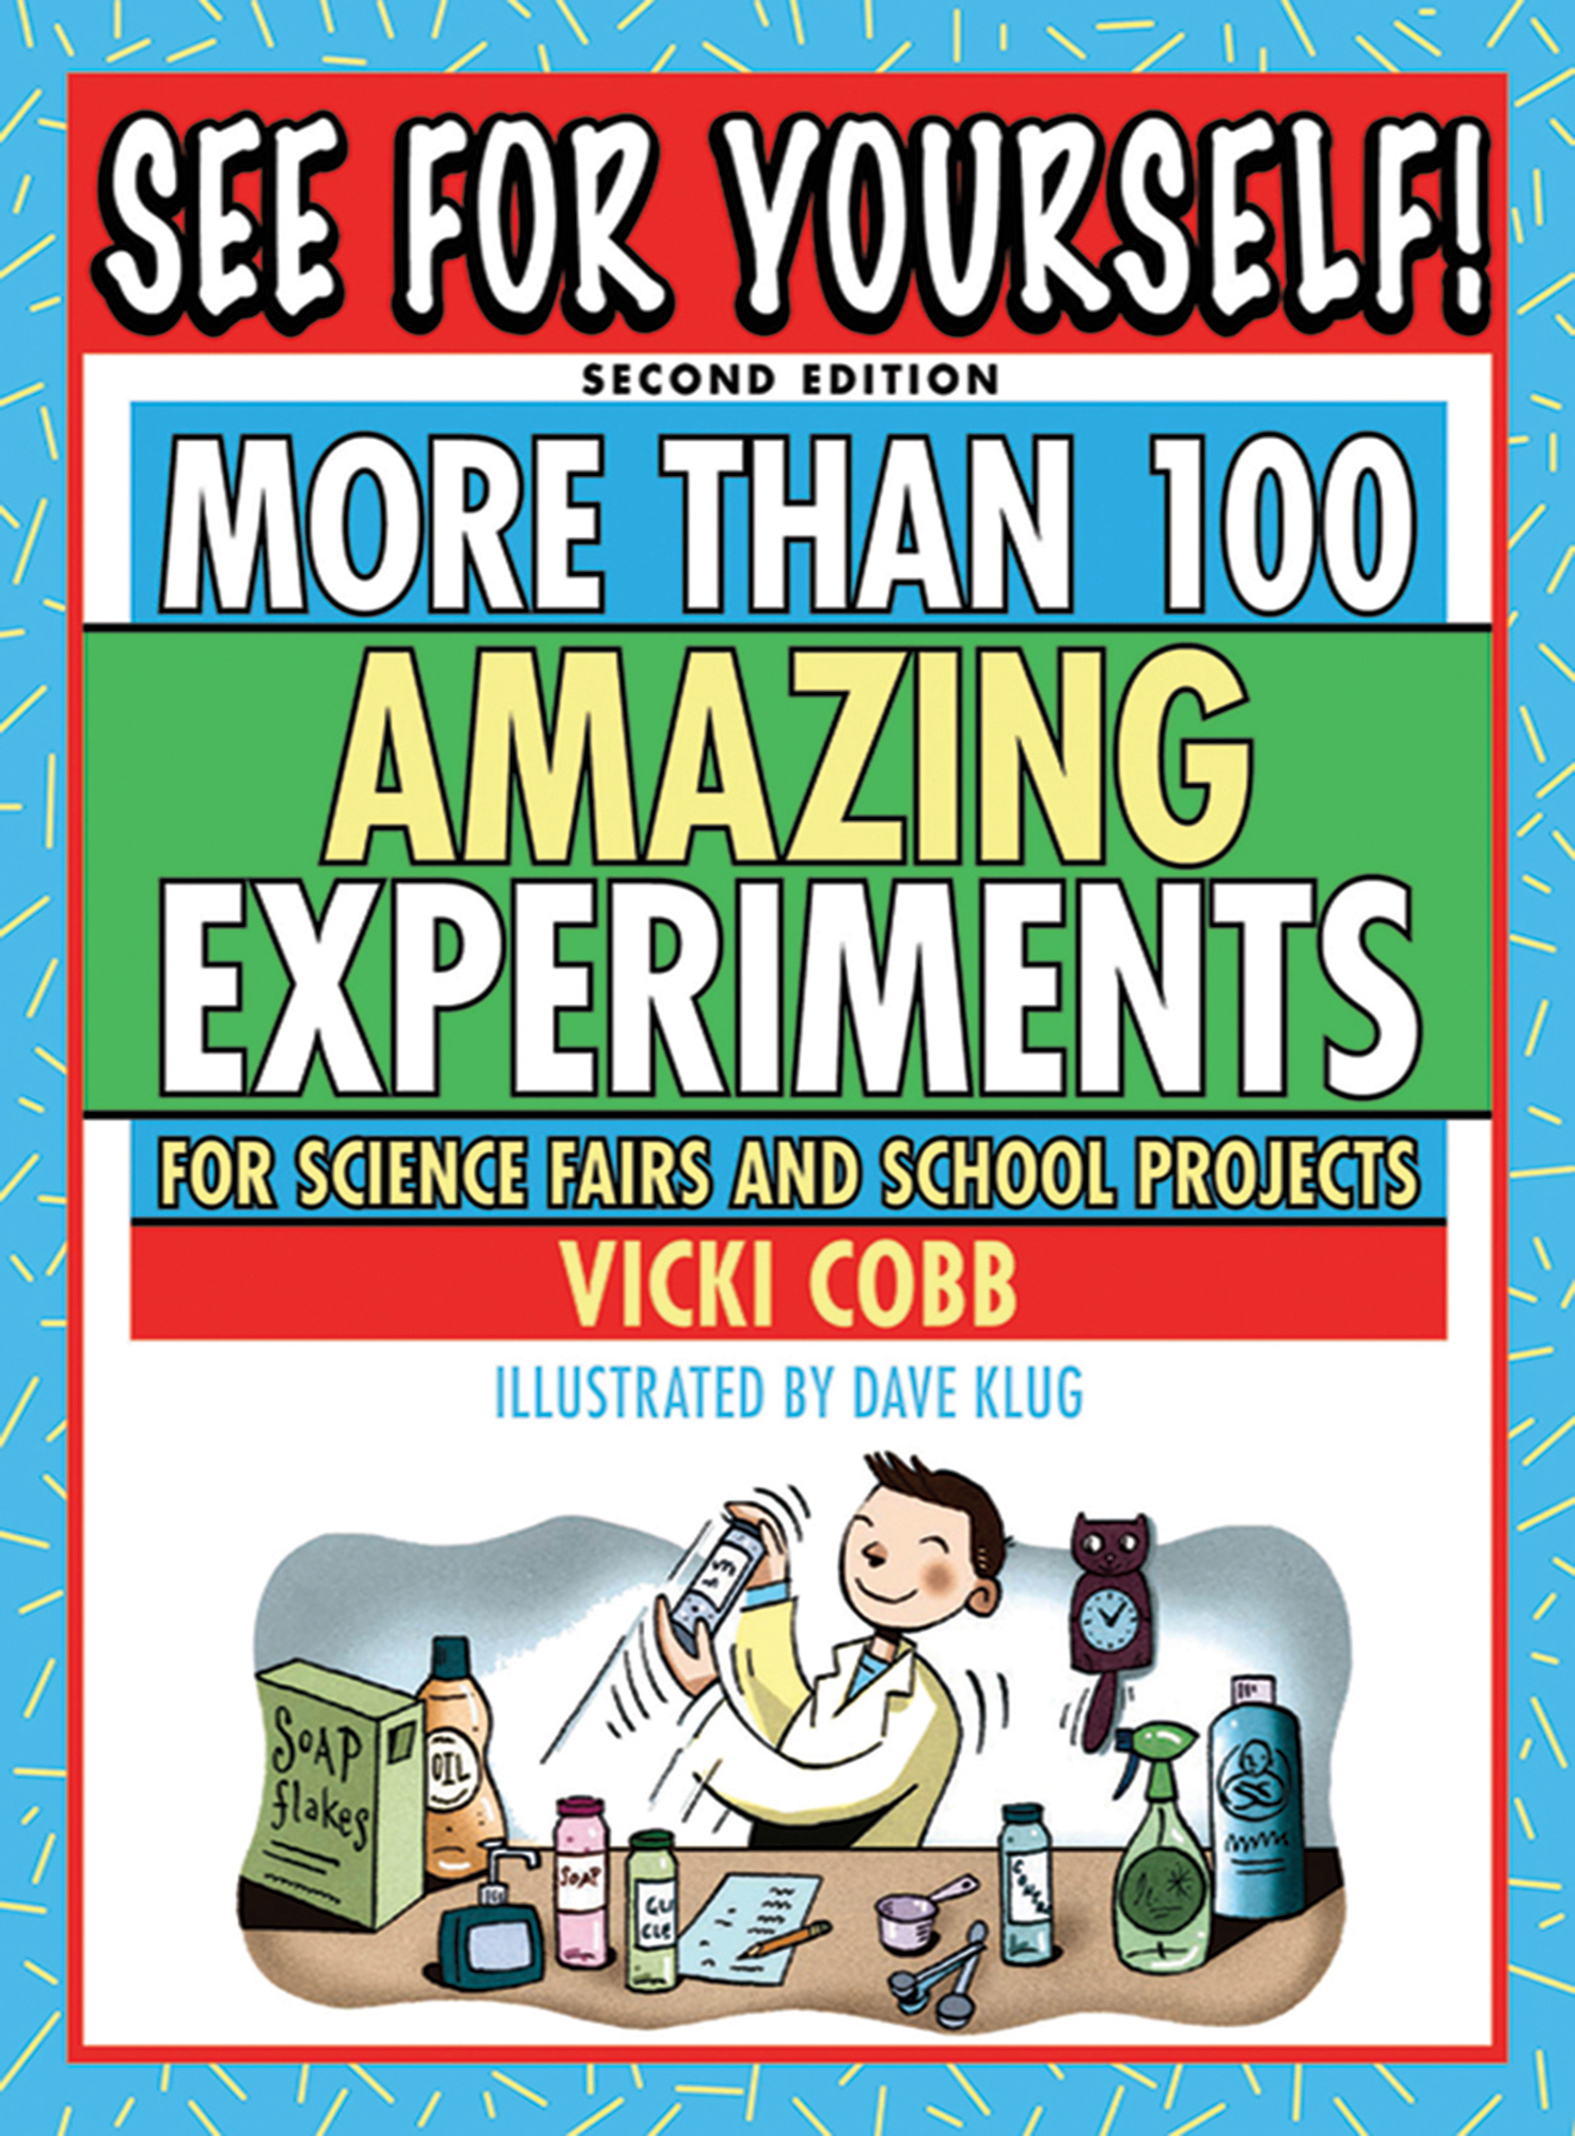 See for Yourself! More Than 100 Amazing Experiments for Science Fairs and School Projects